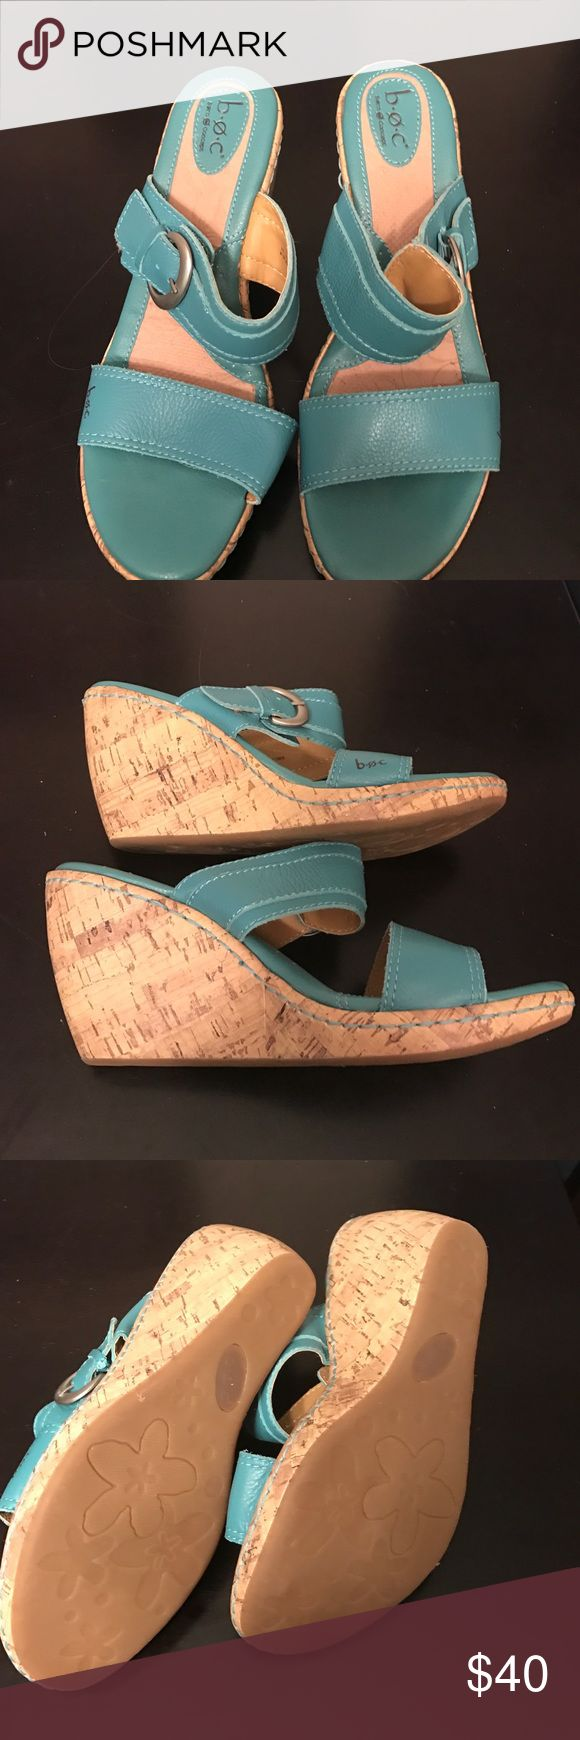 B.o.c. Turquoise wedge sandals, size 10 If he you look at my listings, you can see I have a lot of size 10 shoes I've never worn. I have a problem. The shoes are beautiful, but they should go to someone who was going to wear them. The turquoise sandal is accented with the silver buckle on the side that is adjustable. The wedge is gradual, and at its highest, it is 3 1/2 inches high. b.o.c. Shoes Sandals